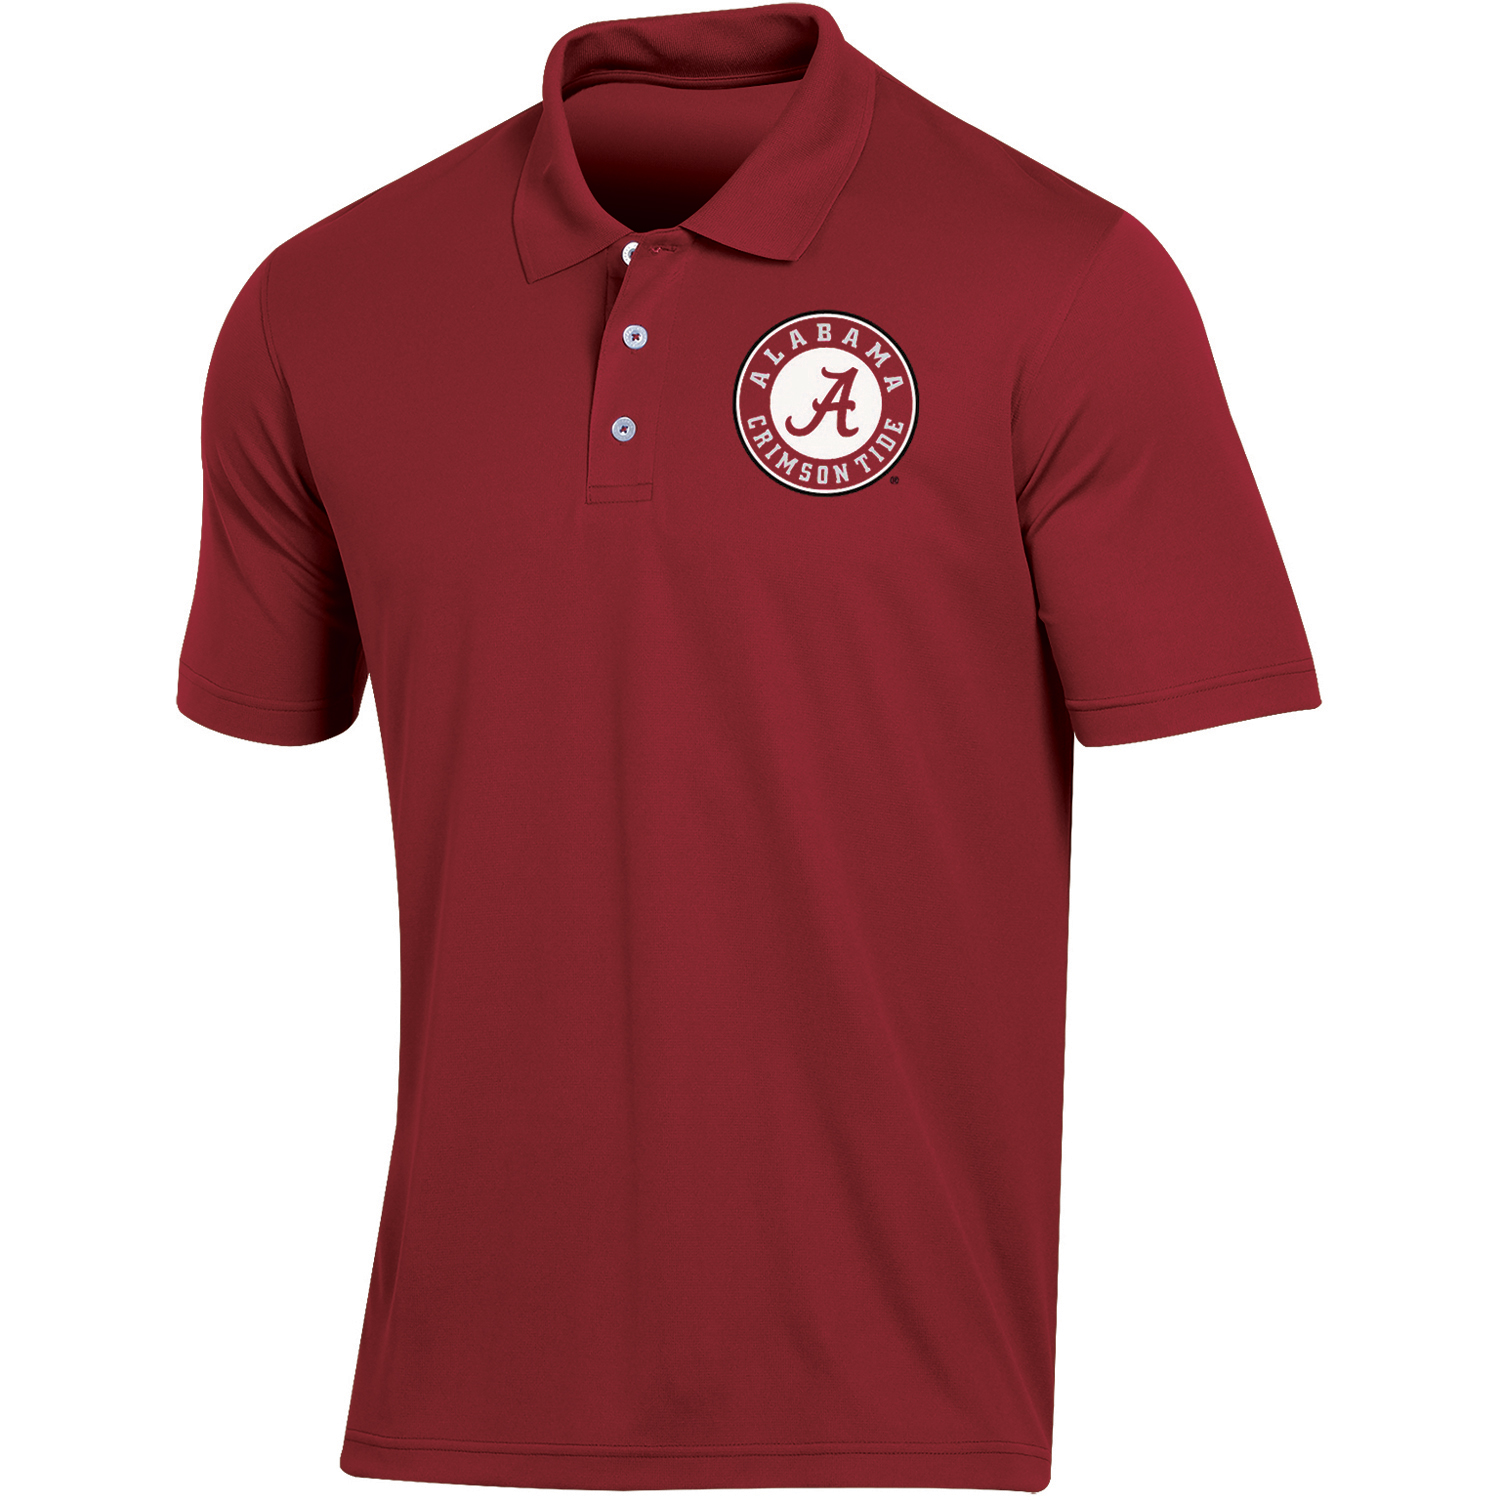 Men's Russell Crimson Alabama Crimson Tide Classic Fit Synthetic Polo